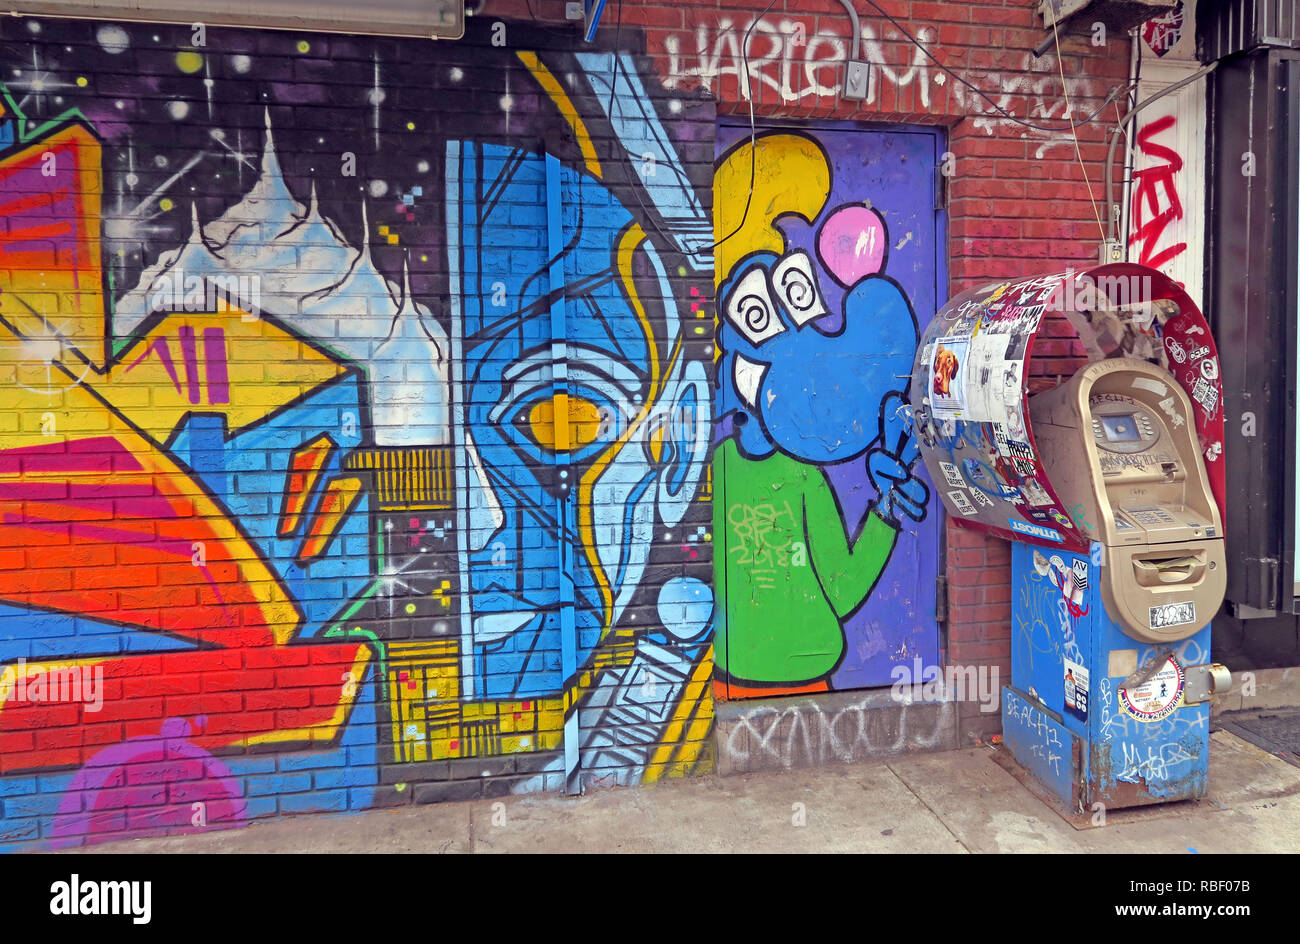 Money and Art, ATM at East 7th Street, East Village, Manhattan, New York, NY, USA - Stock Image